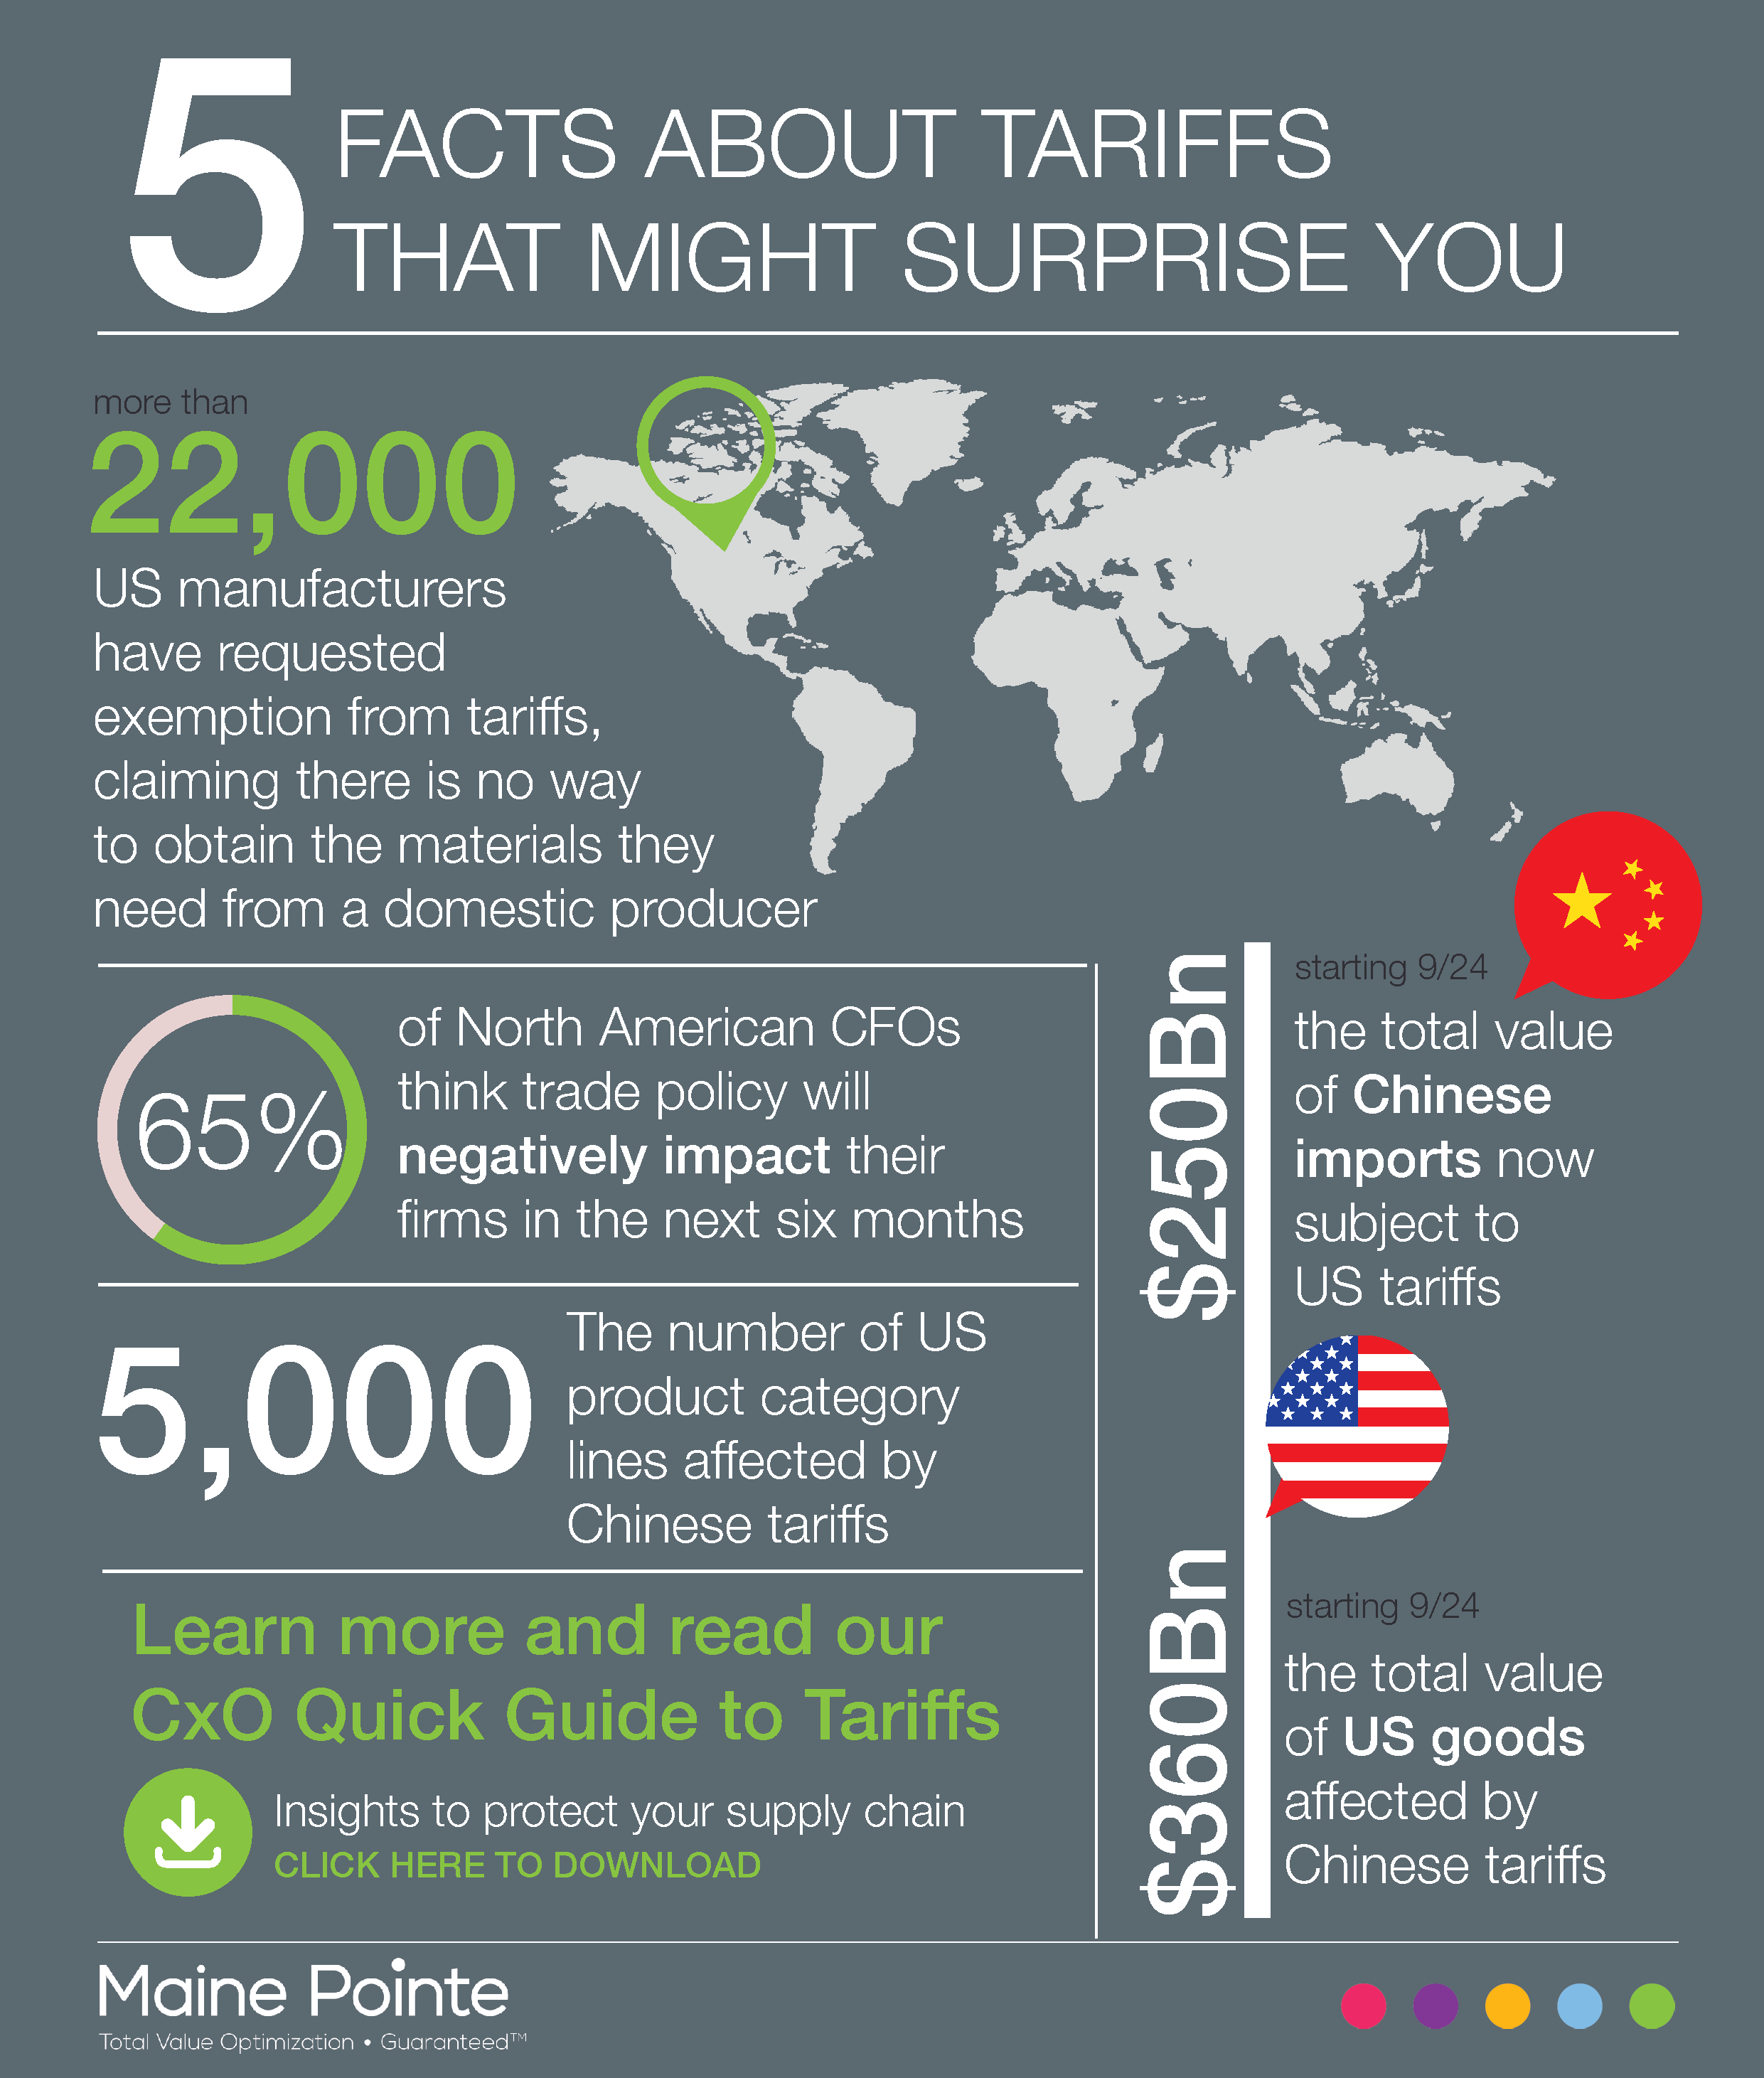 Tariffs Infographic_MainePointe_2018